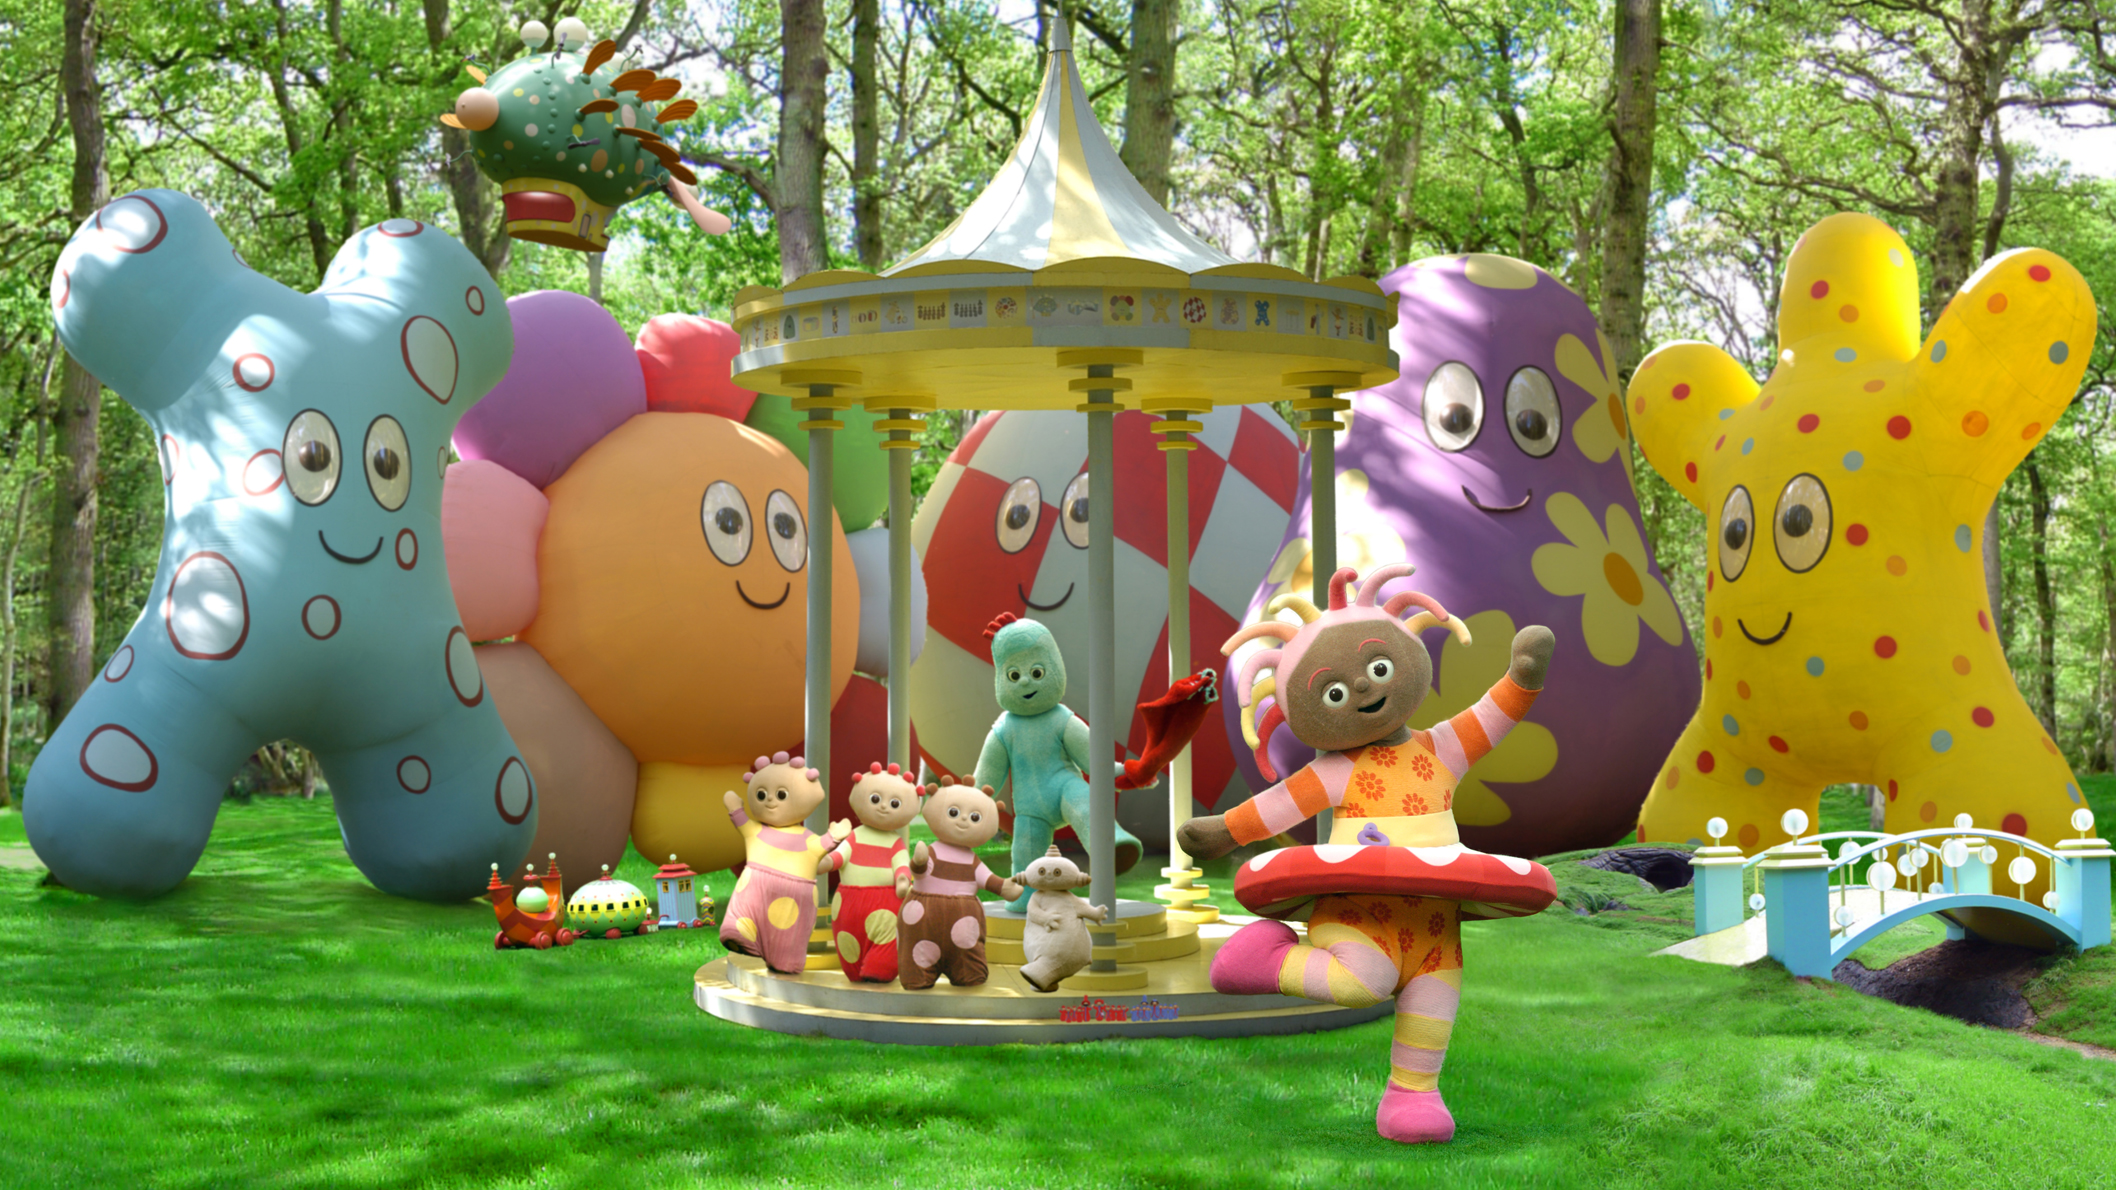 Six character in varios shapes and sizes playing in the middle of a park. Behind them are tall trees and huge, colourful balloons.